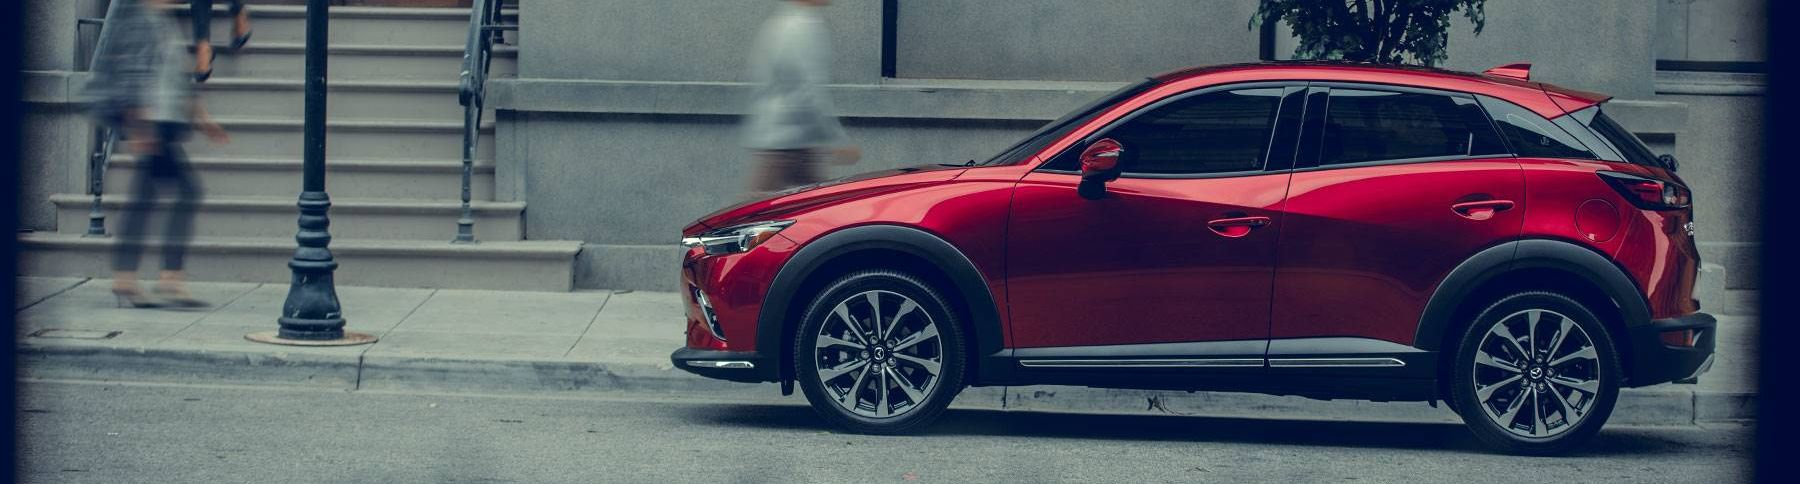 2019 mazda cx-3 leasing near garden city, ny - wantagh mazda